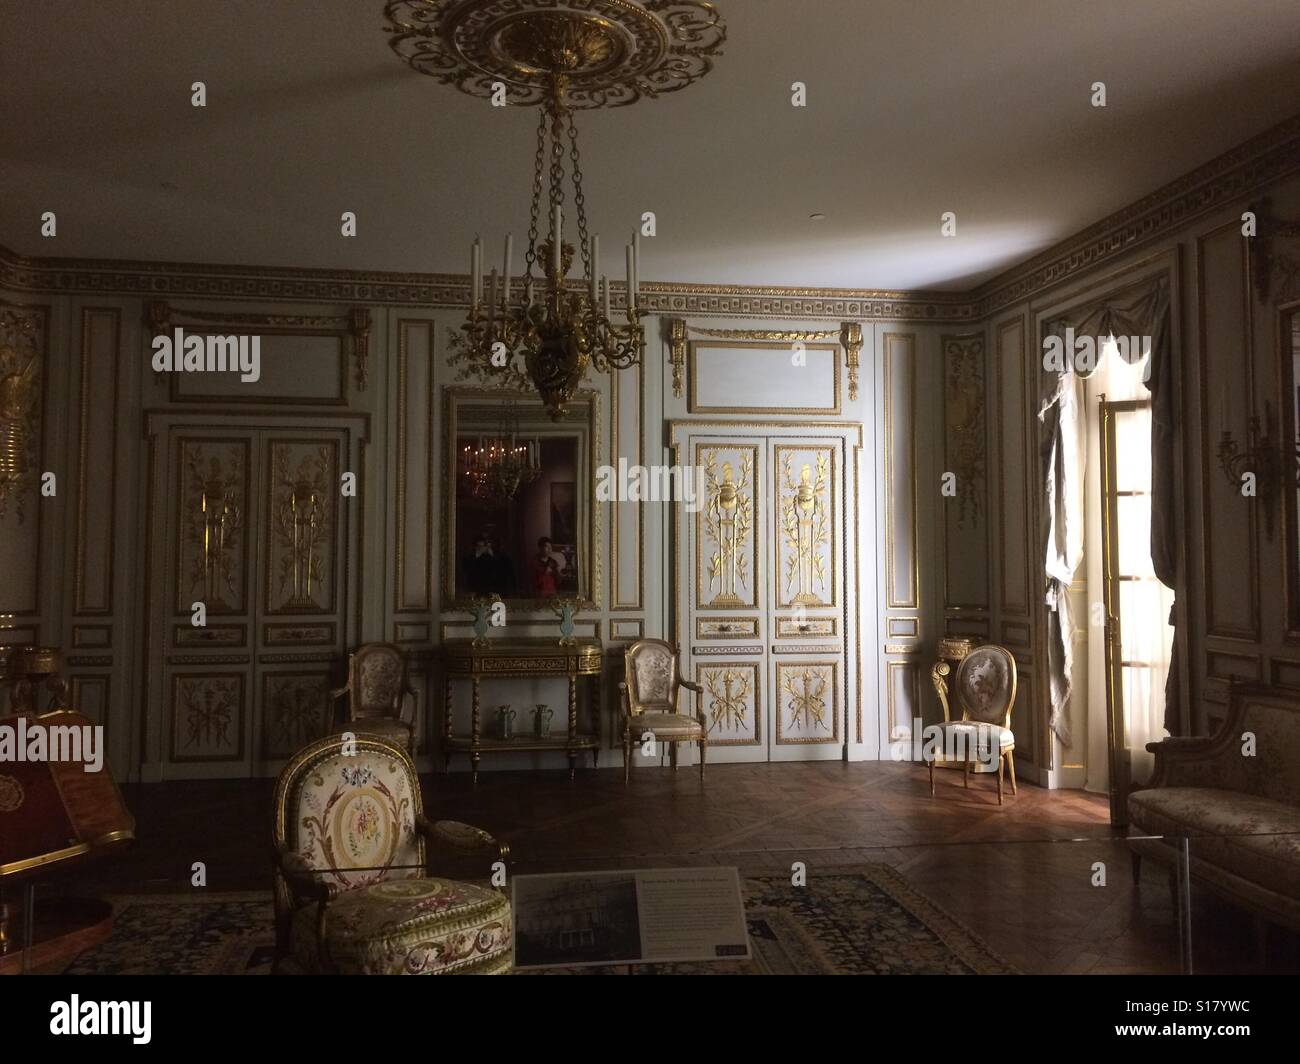 Victorian Style Living Room Stock Photo: 310576824 - Alamy